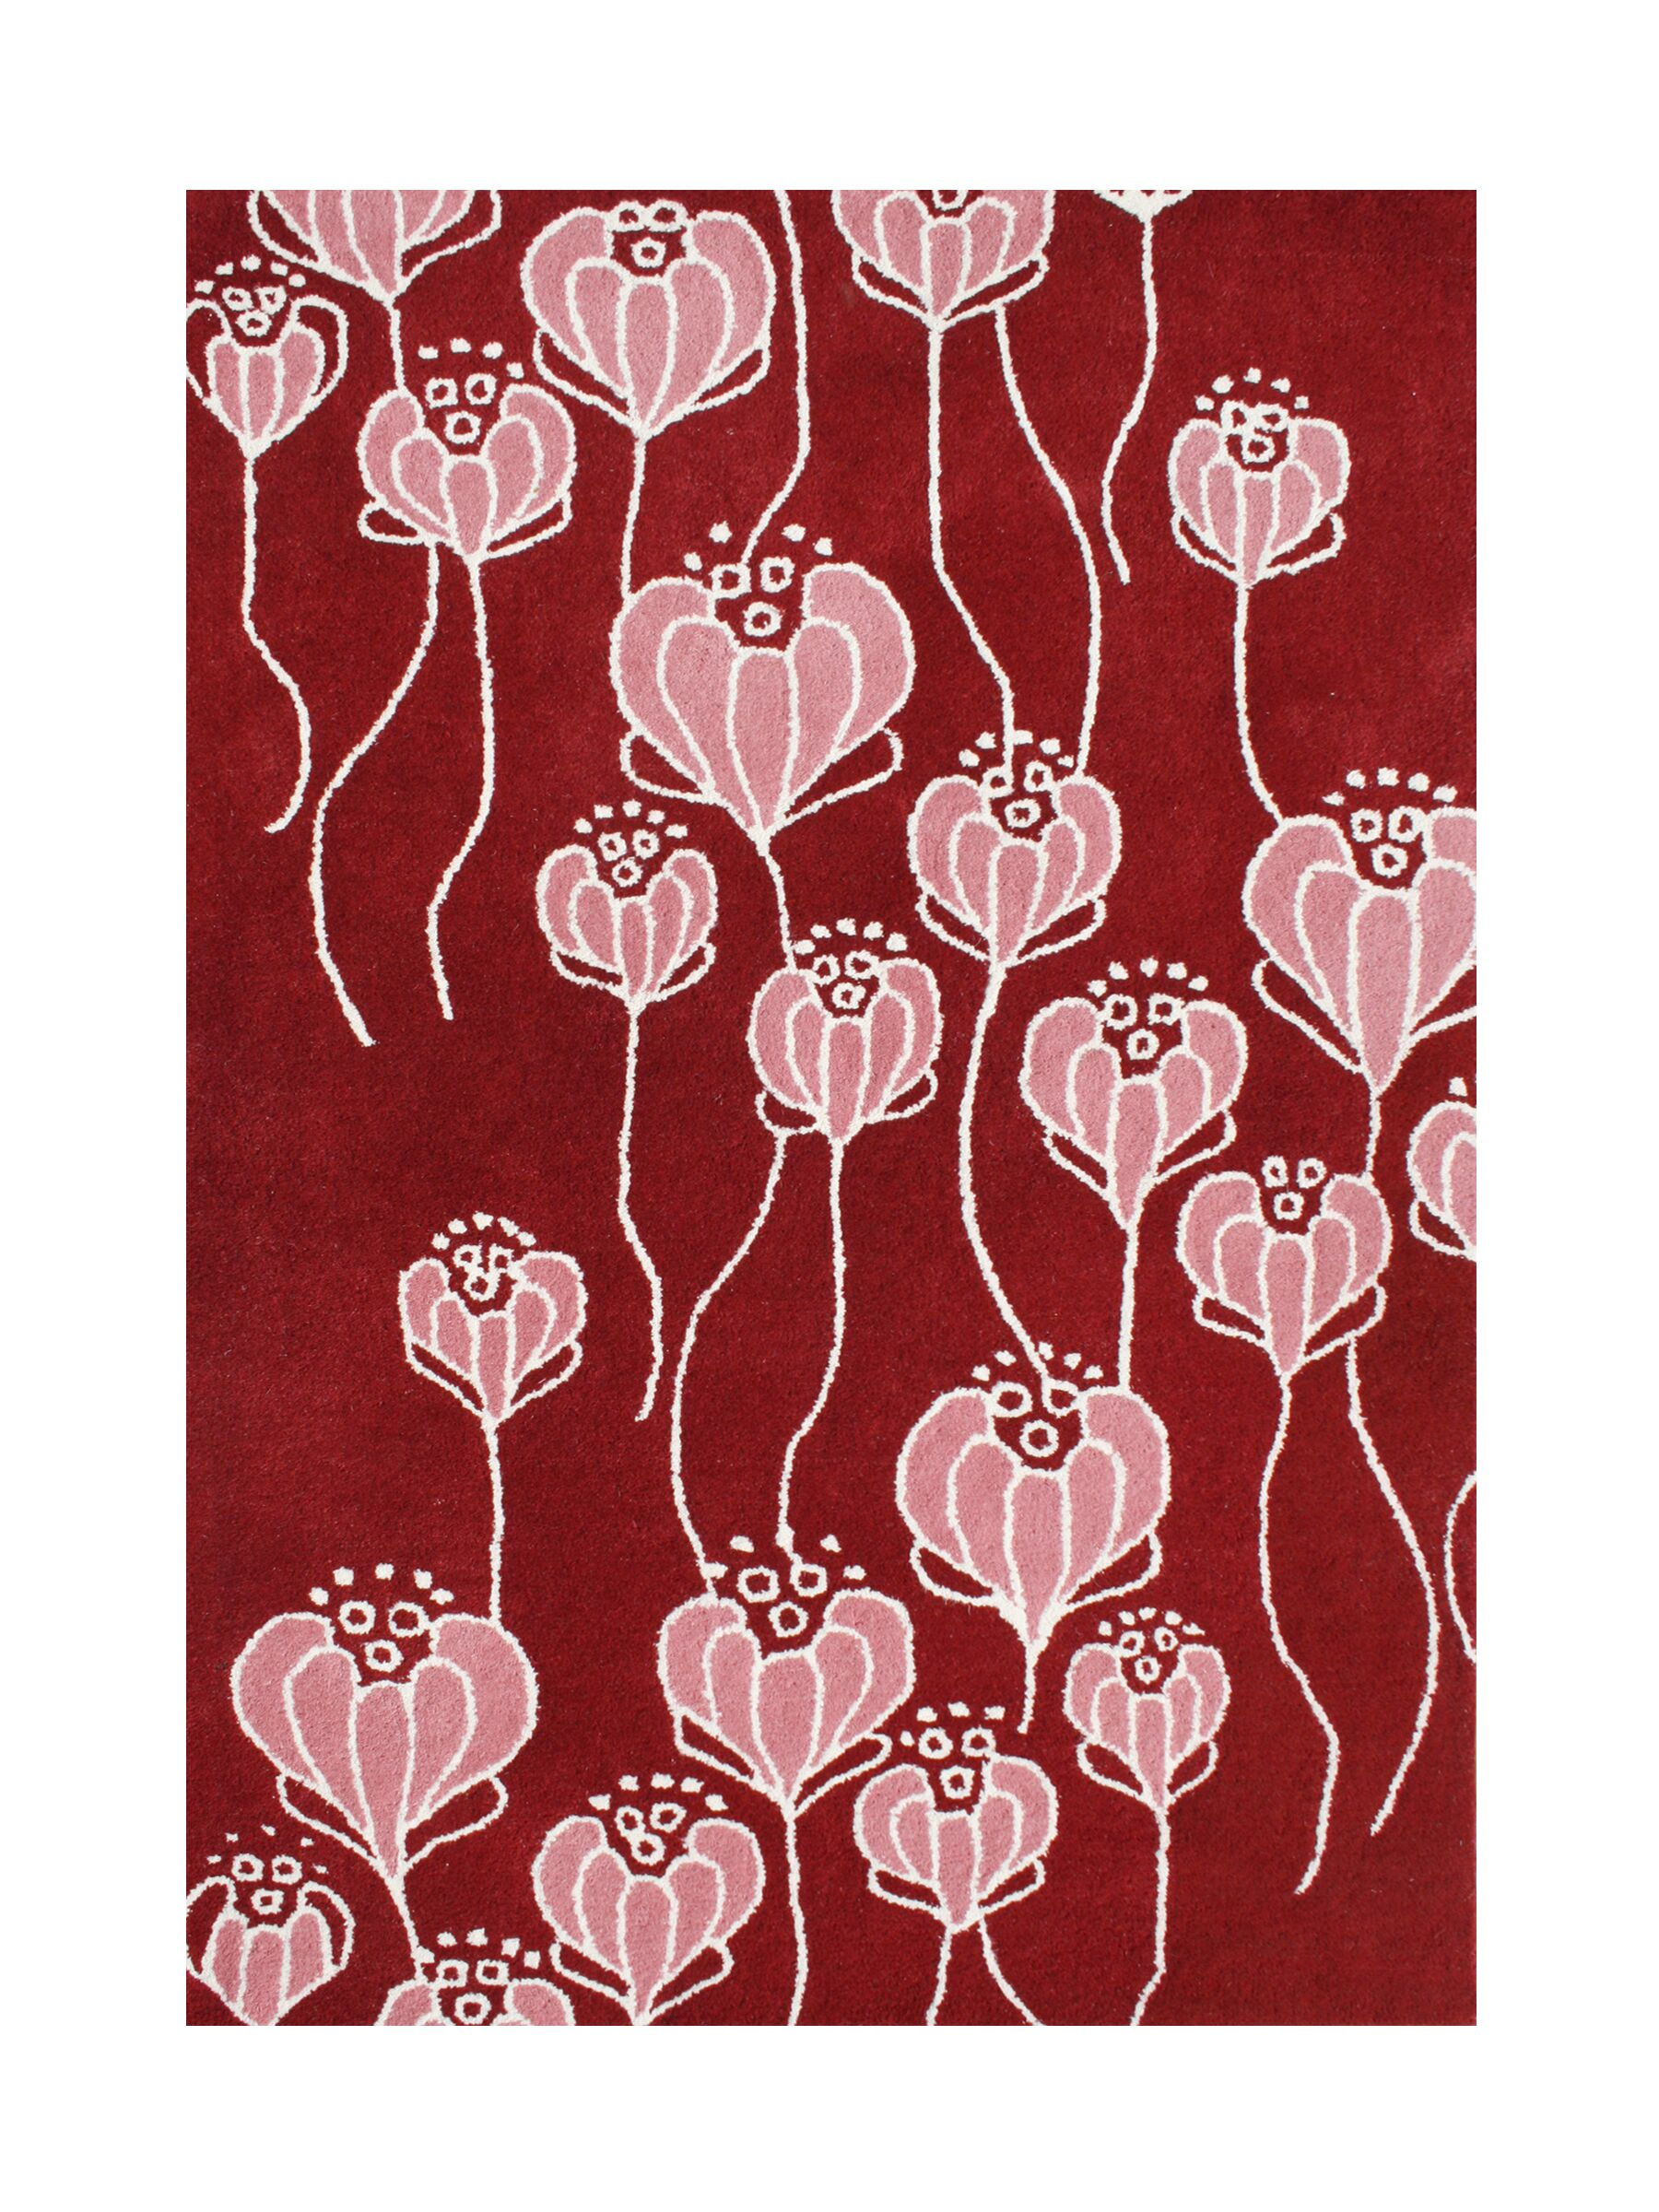 Mining Hand-Tufted Red Area Rug